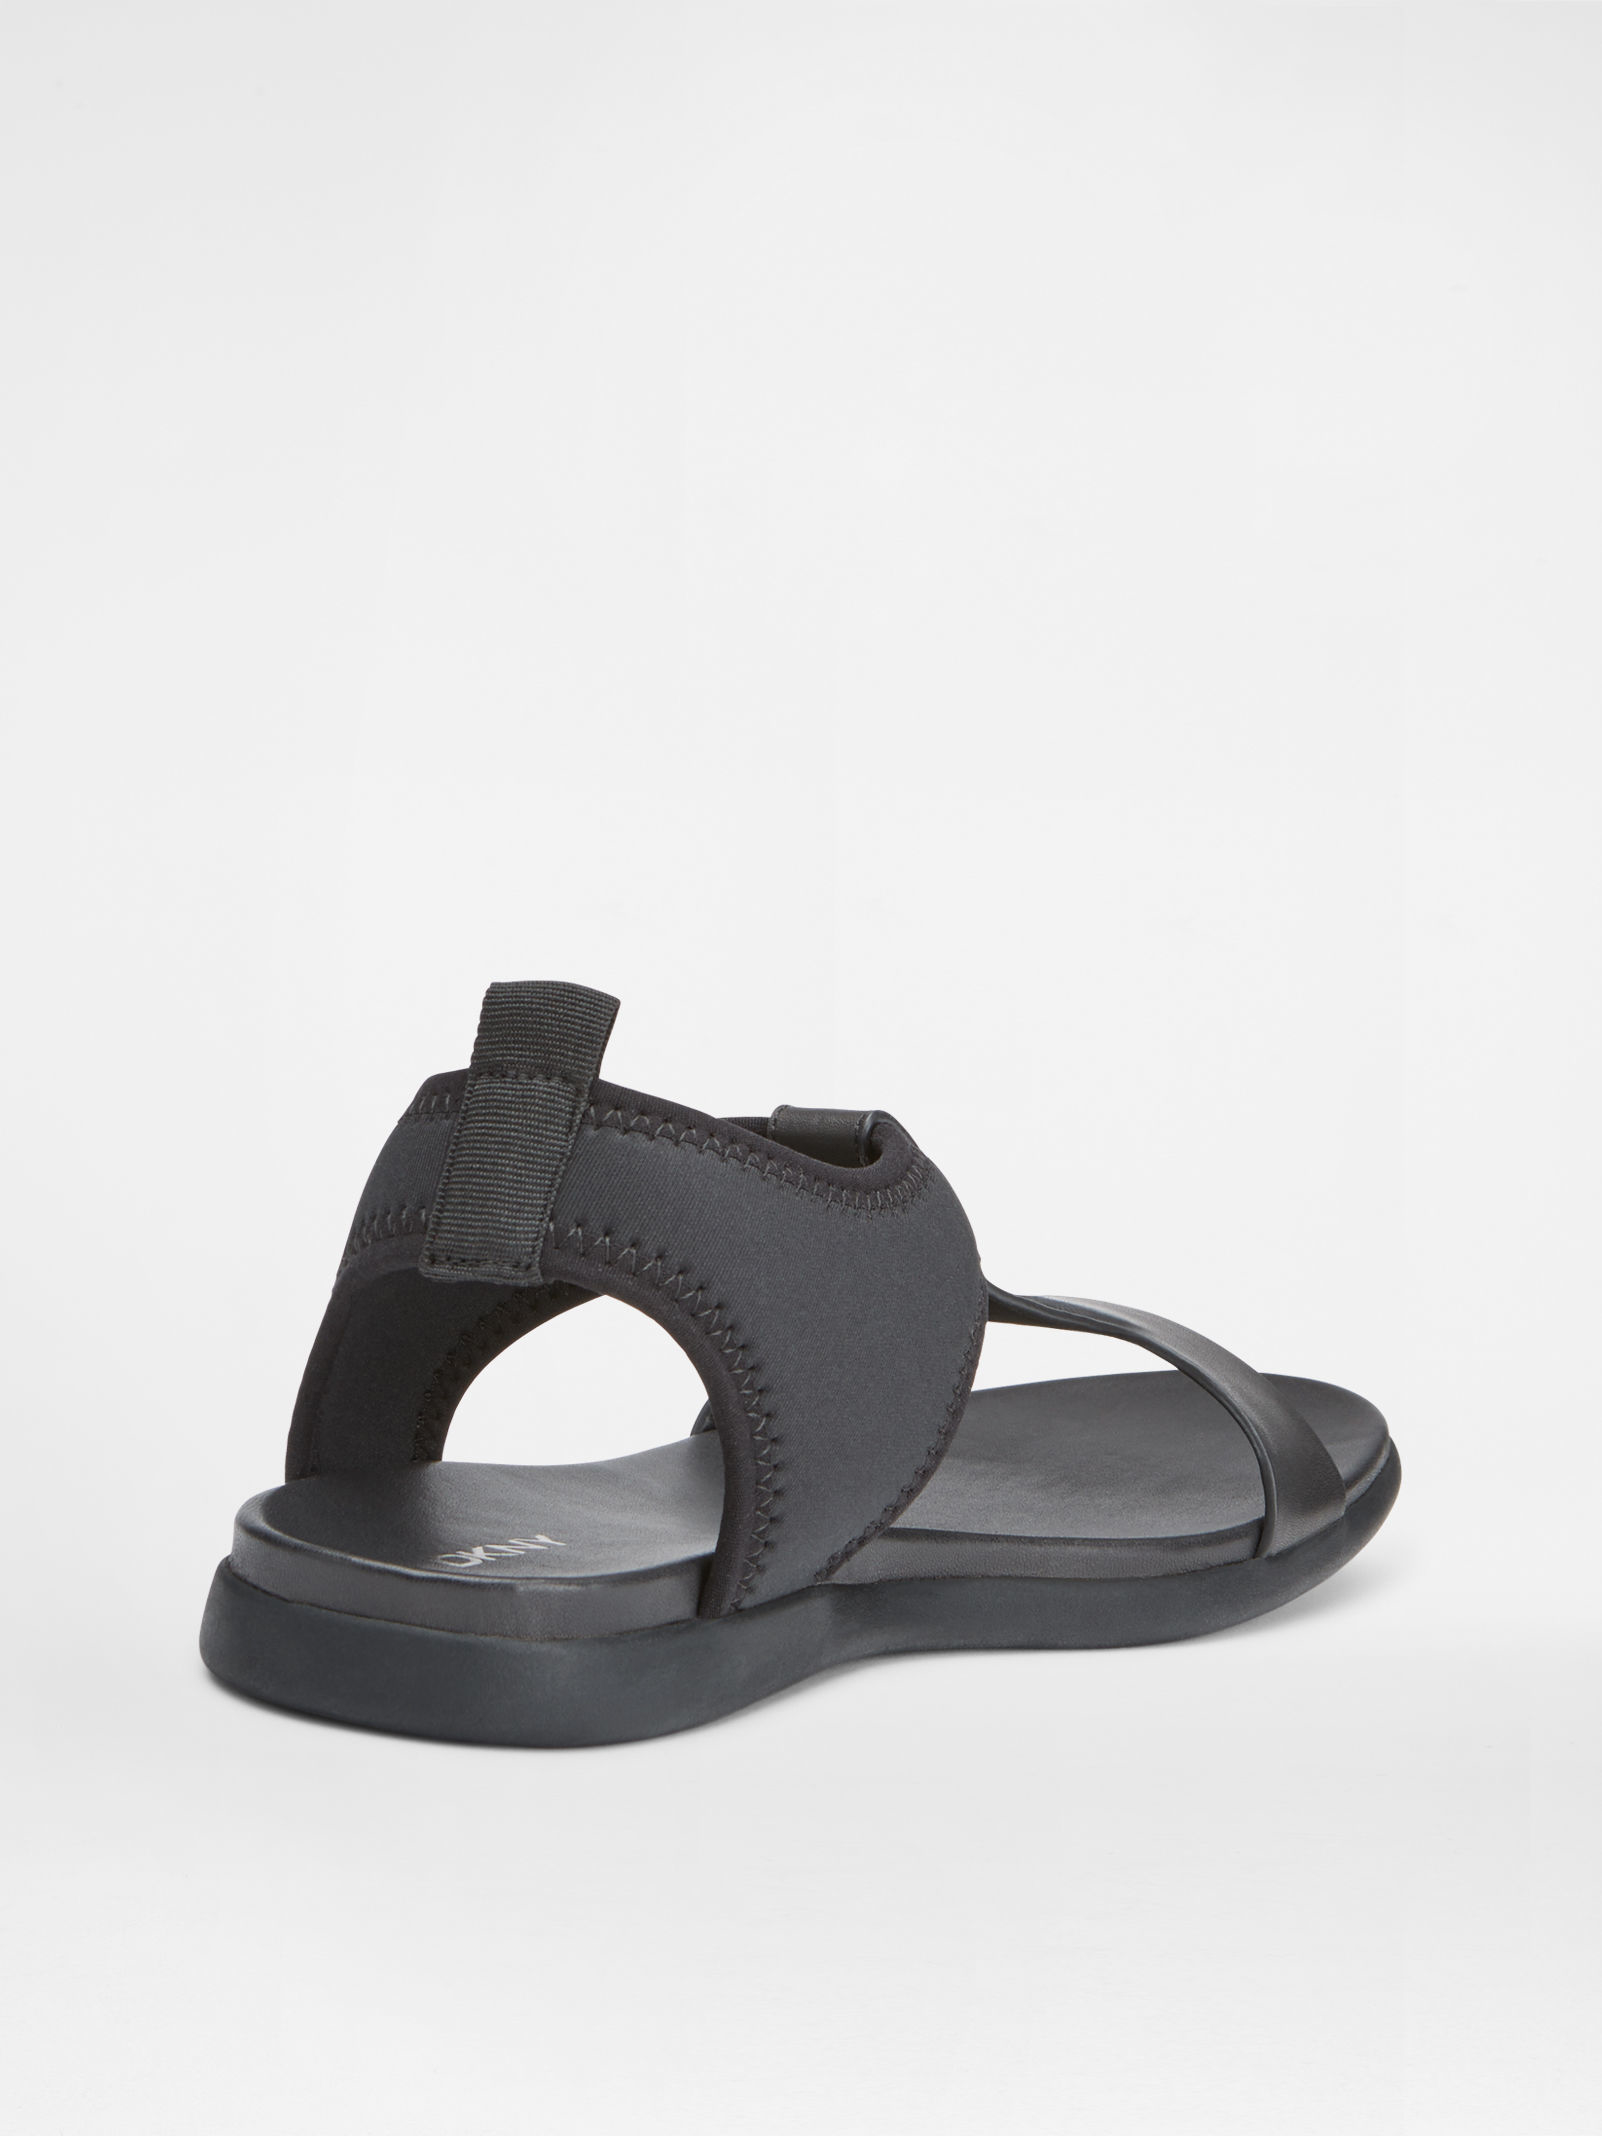 dkny caprise leather and scuba sandal in black lyst